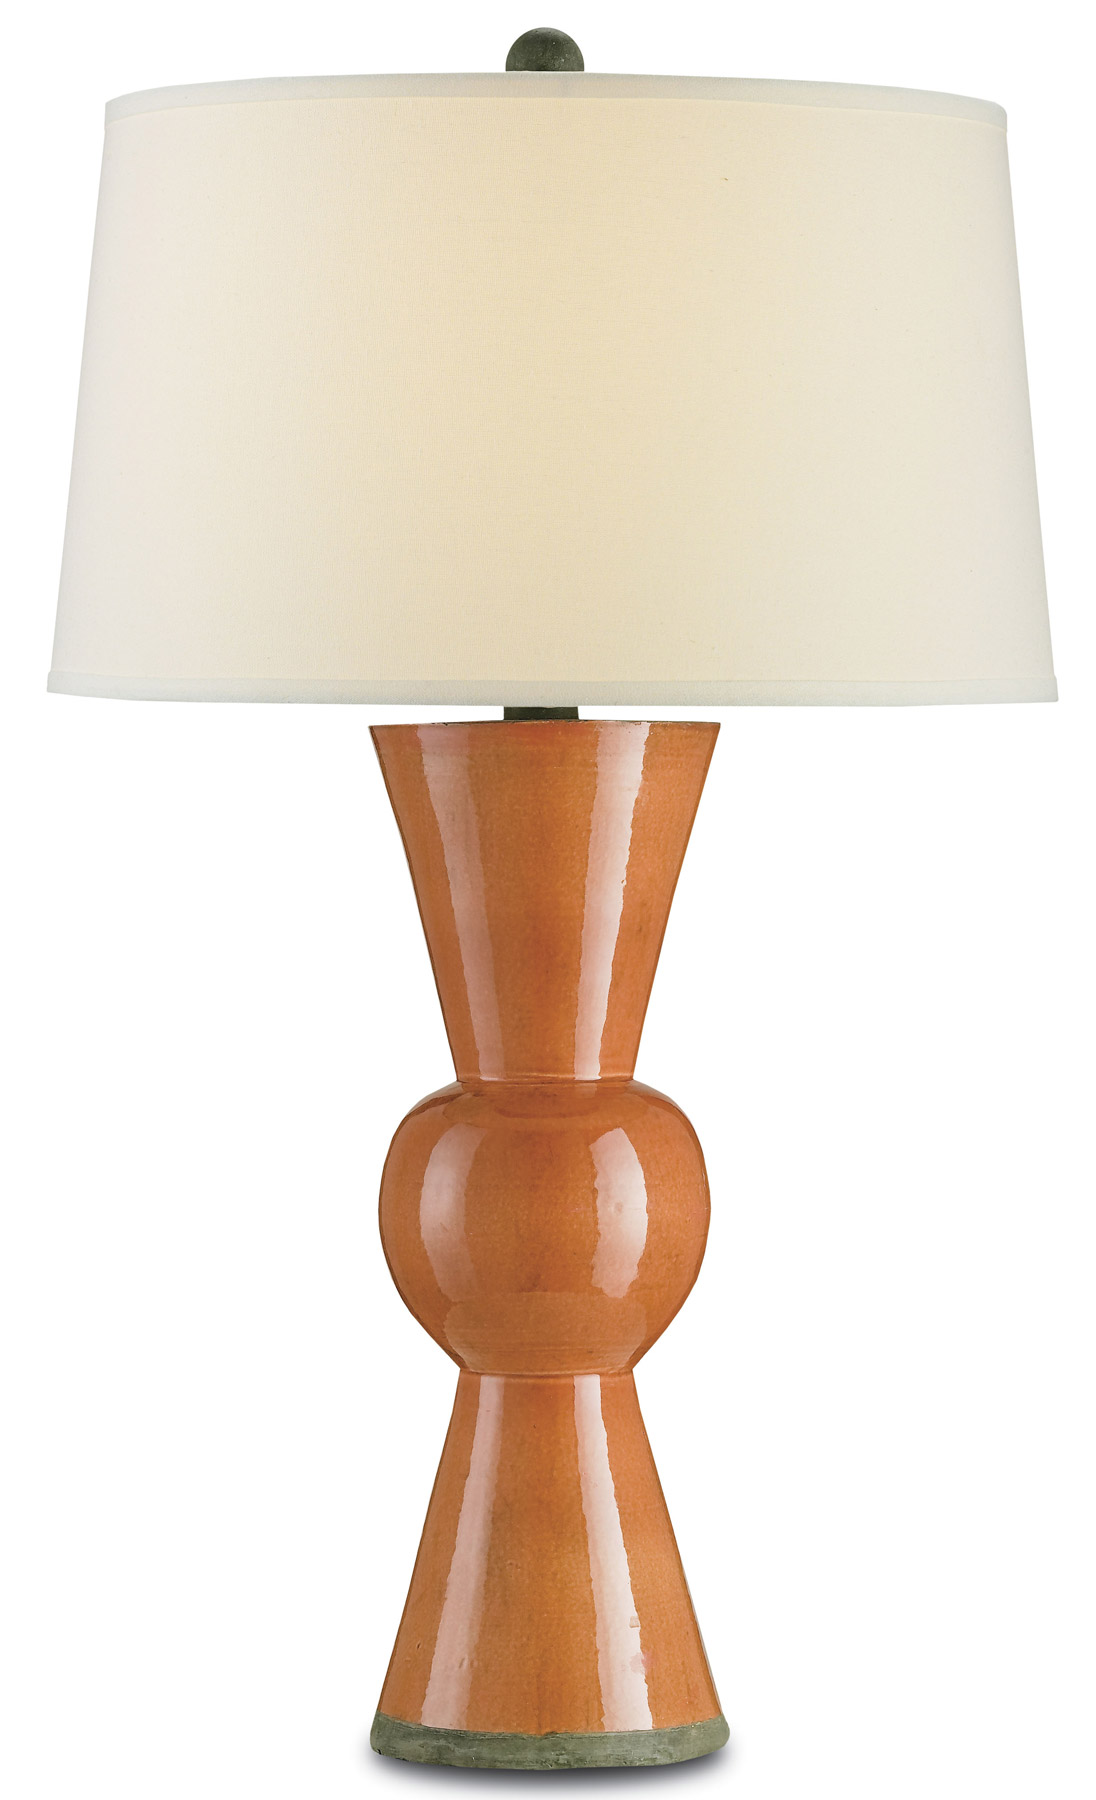 Currey And Company 6351 Upbeat Orange Table Lamp